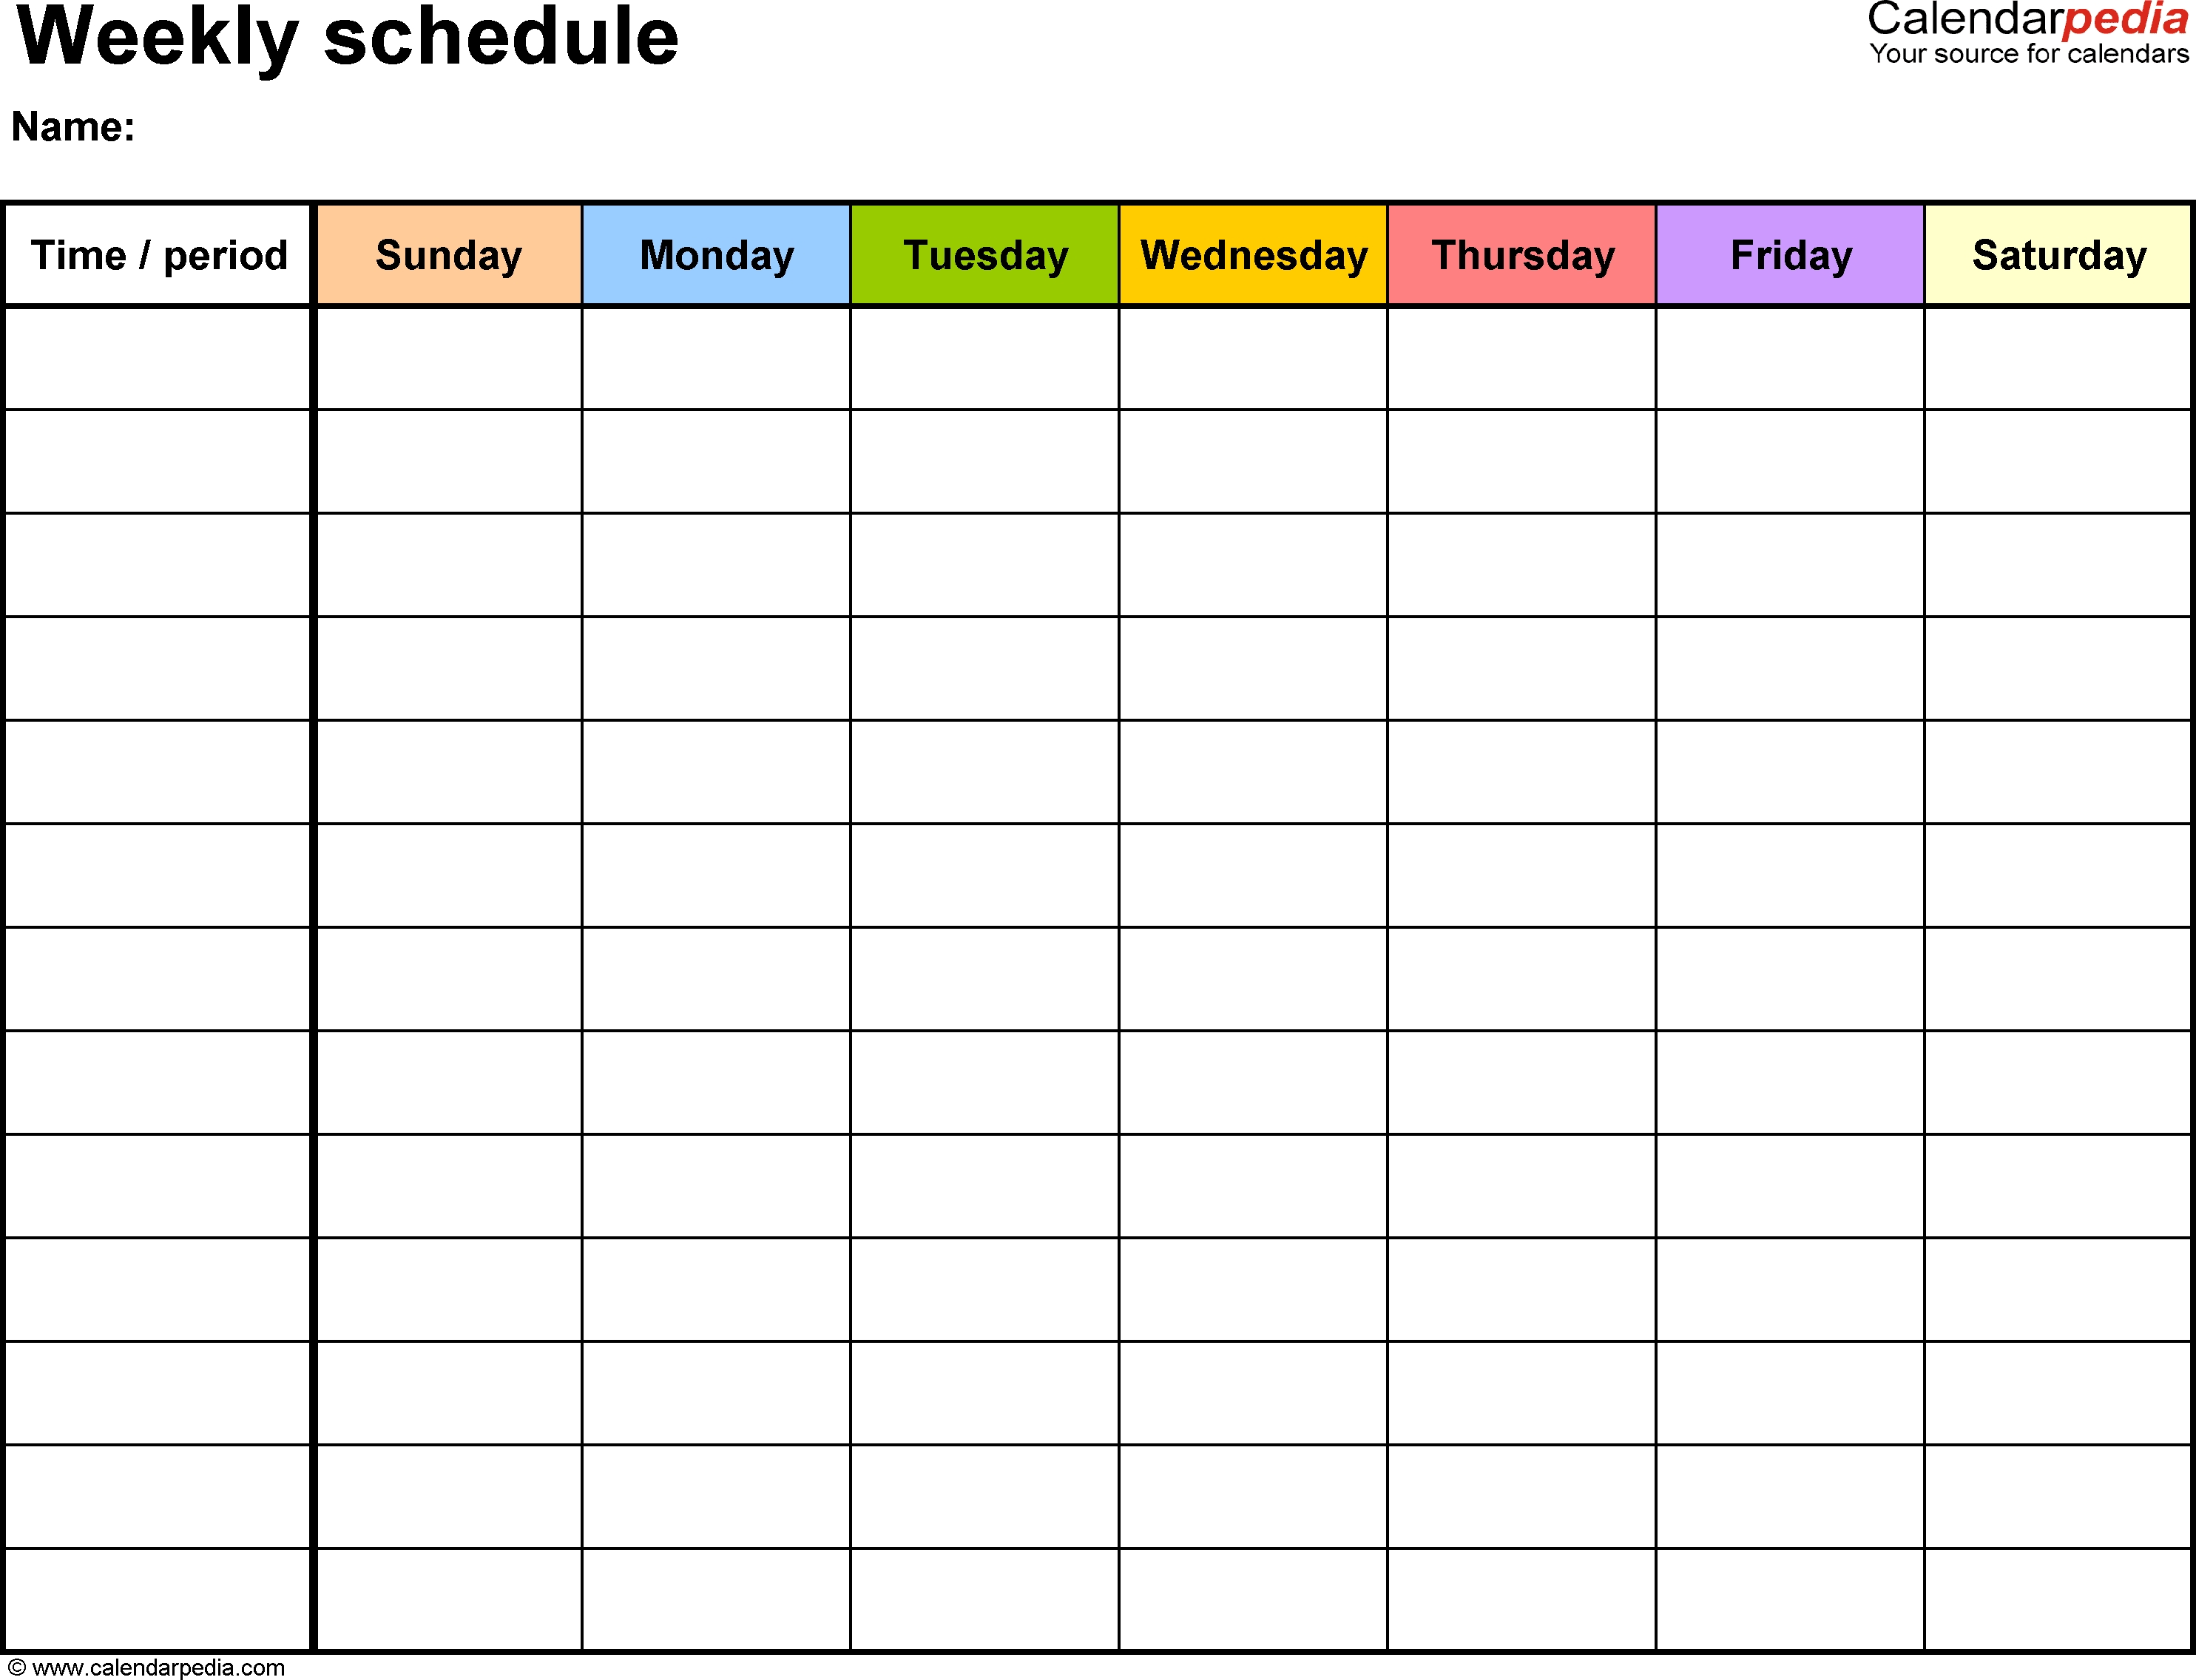 Free Weekly Schedule Templates For Word - 18 Templates 6 Week Blank Calendar Printable